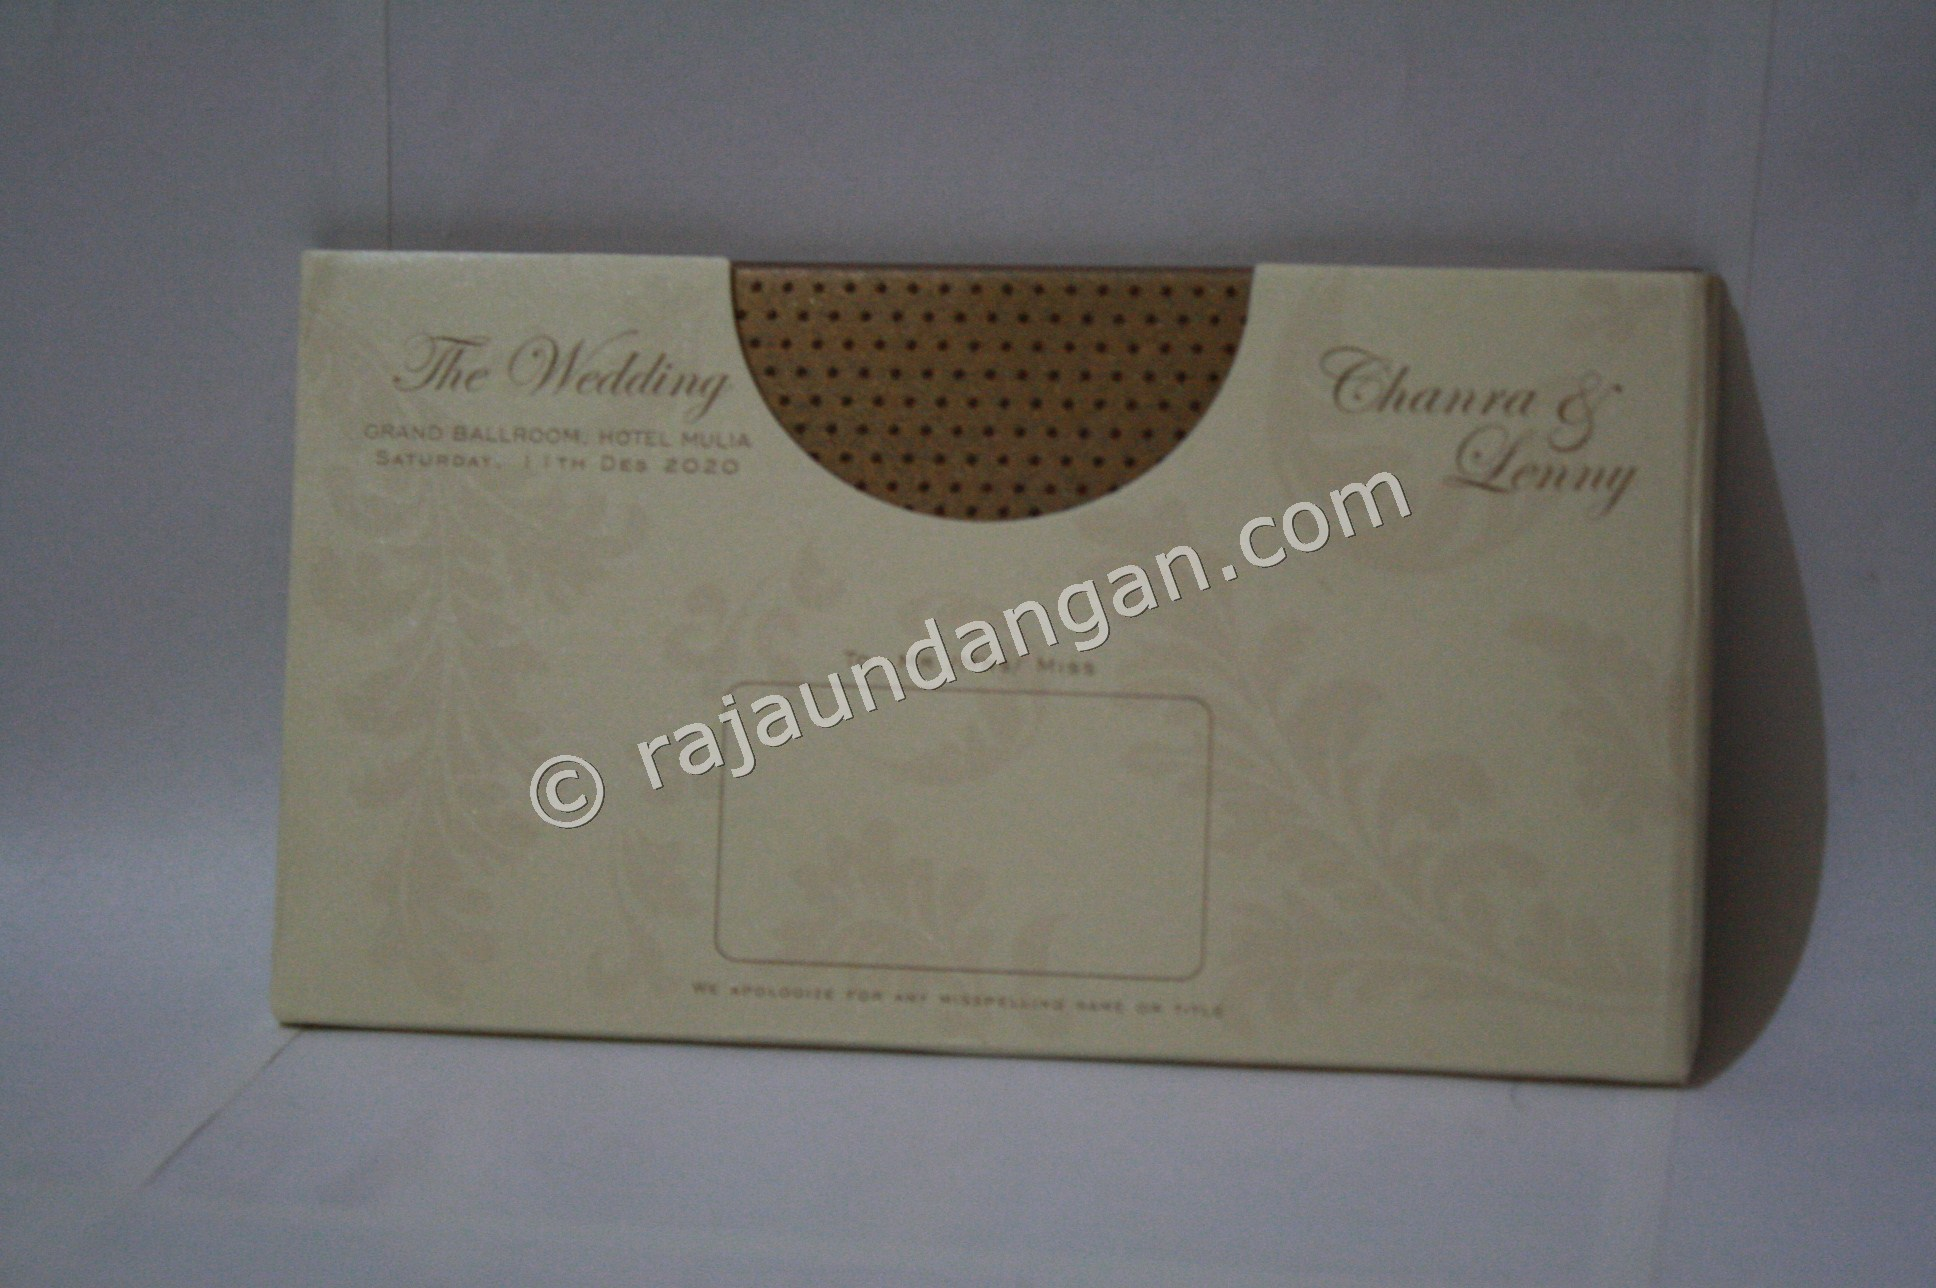 Membuat Wedding Invitations Unik di Siwalan Kerto